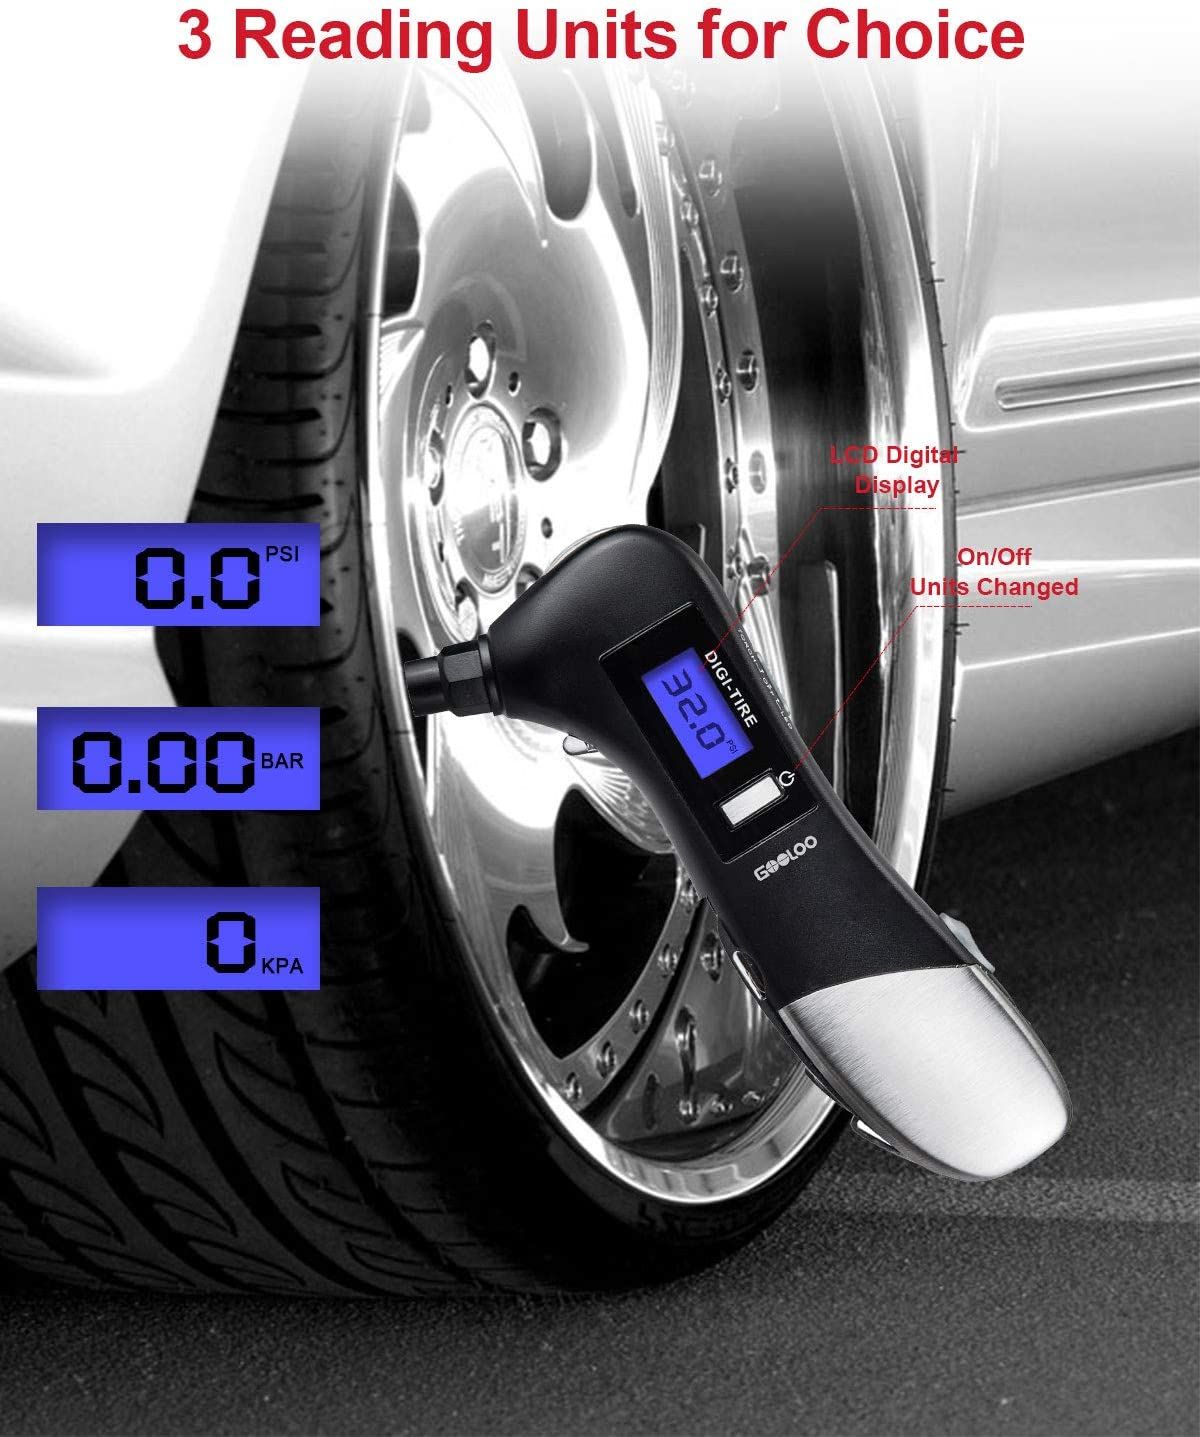 GOOLOO Tire Gauges 150 PSI Digital Tire Pressure Gauge with LCD Display and LED Flashlight for Car Truck Motorcycles Bicycle Multifunction 9 in 1 Car Gadget 1 Pack